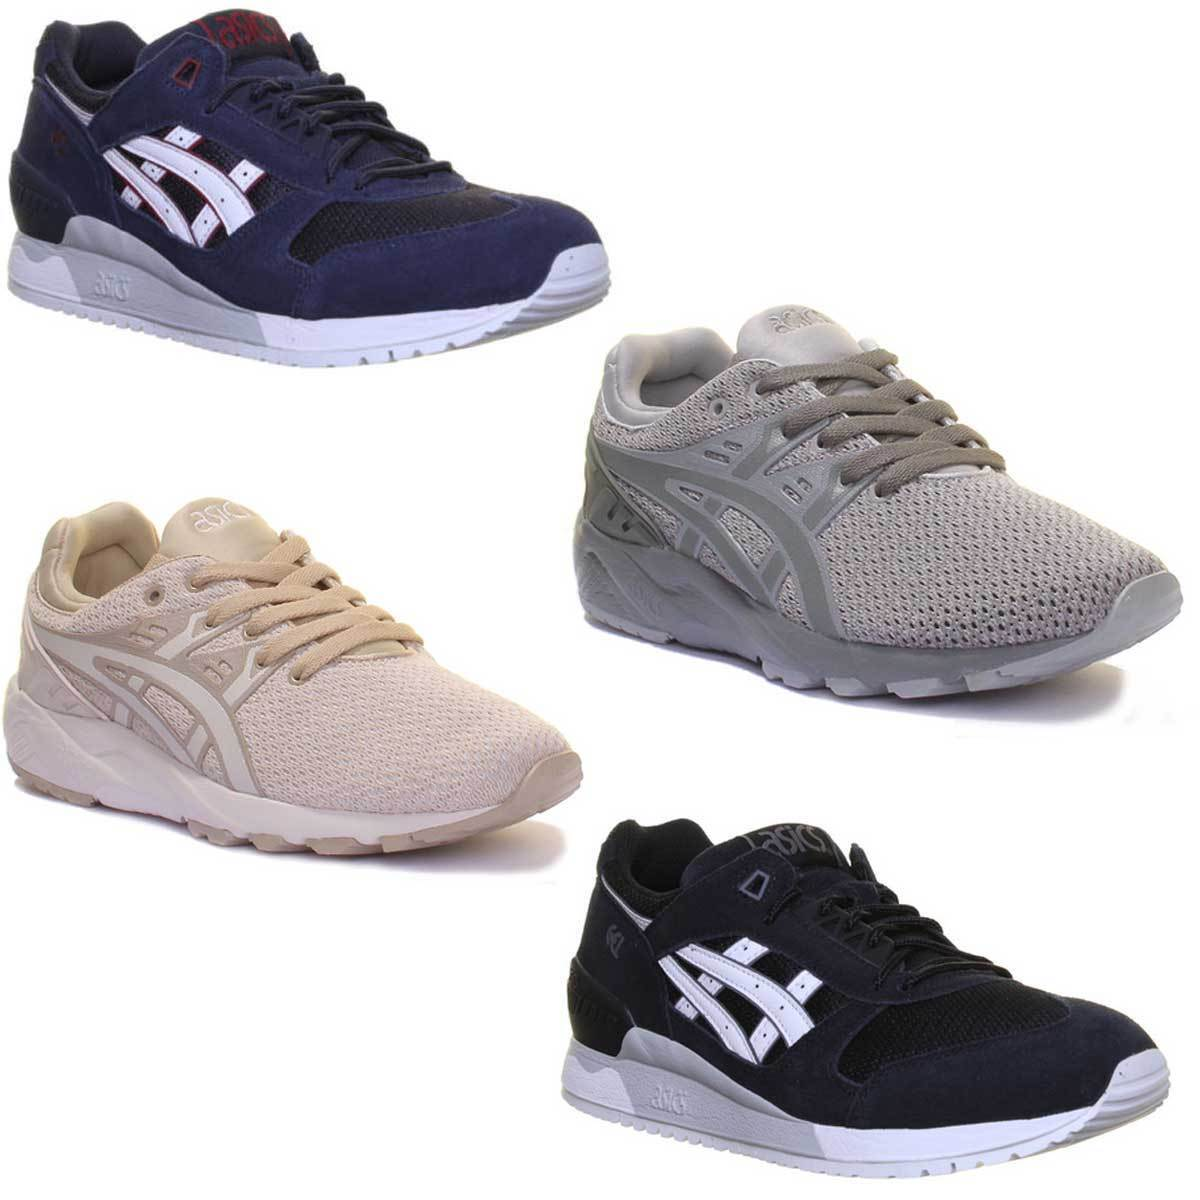 Asics Gel Respector Unisex Other Fabric Trainers